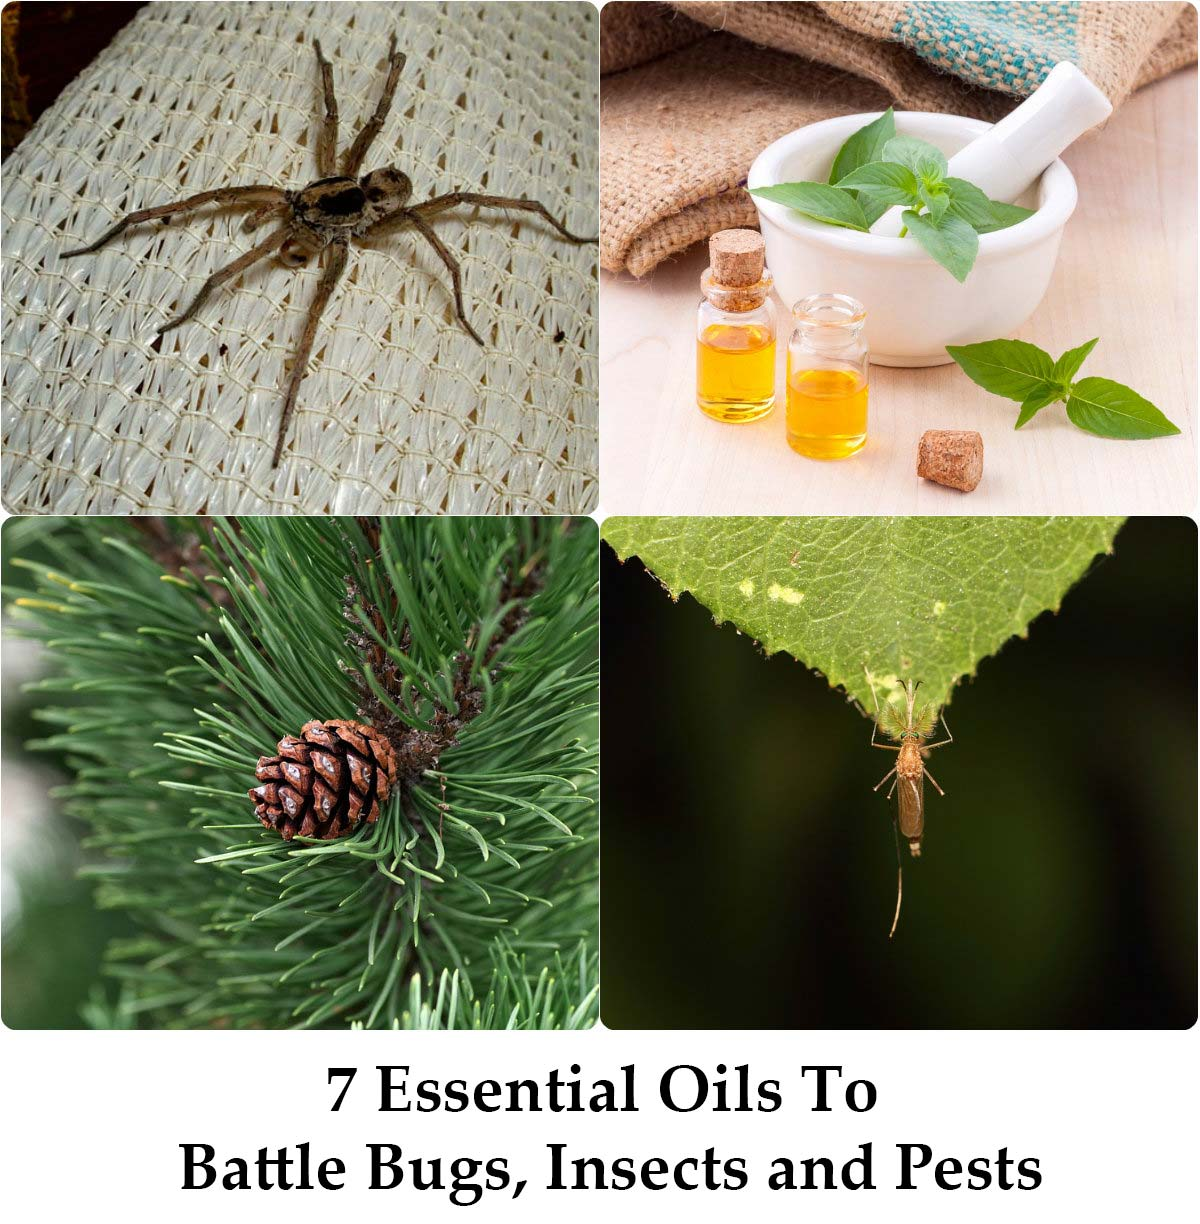 7 Essential Oils to Battle Bugs, Insects and Pests